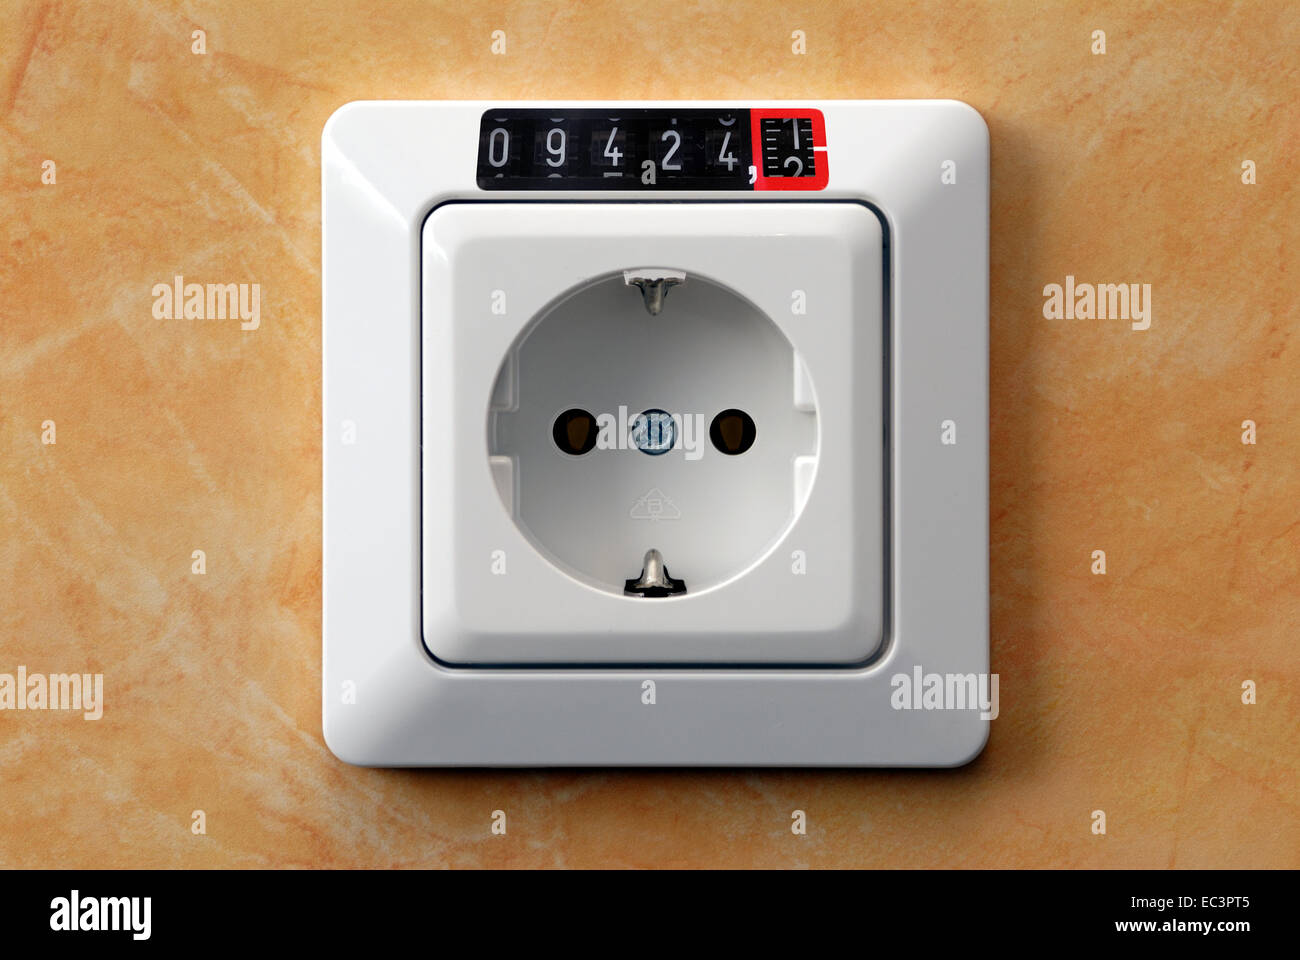 Electrical Outlet with Electricity Meter - Stock Image